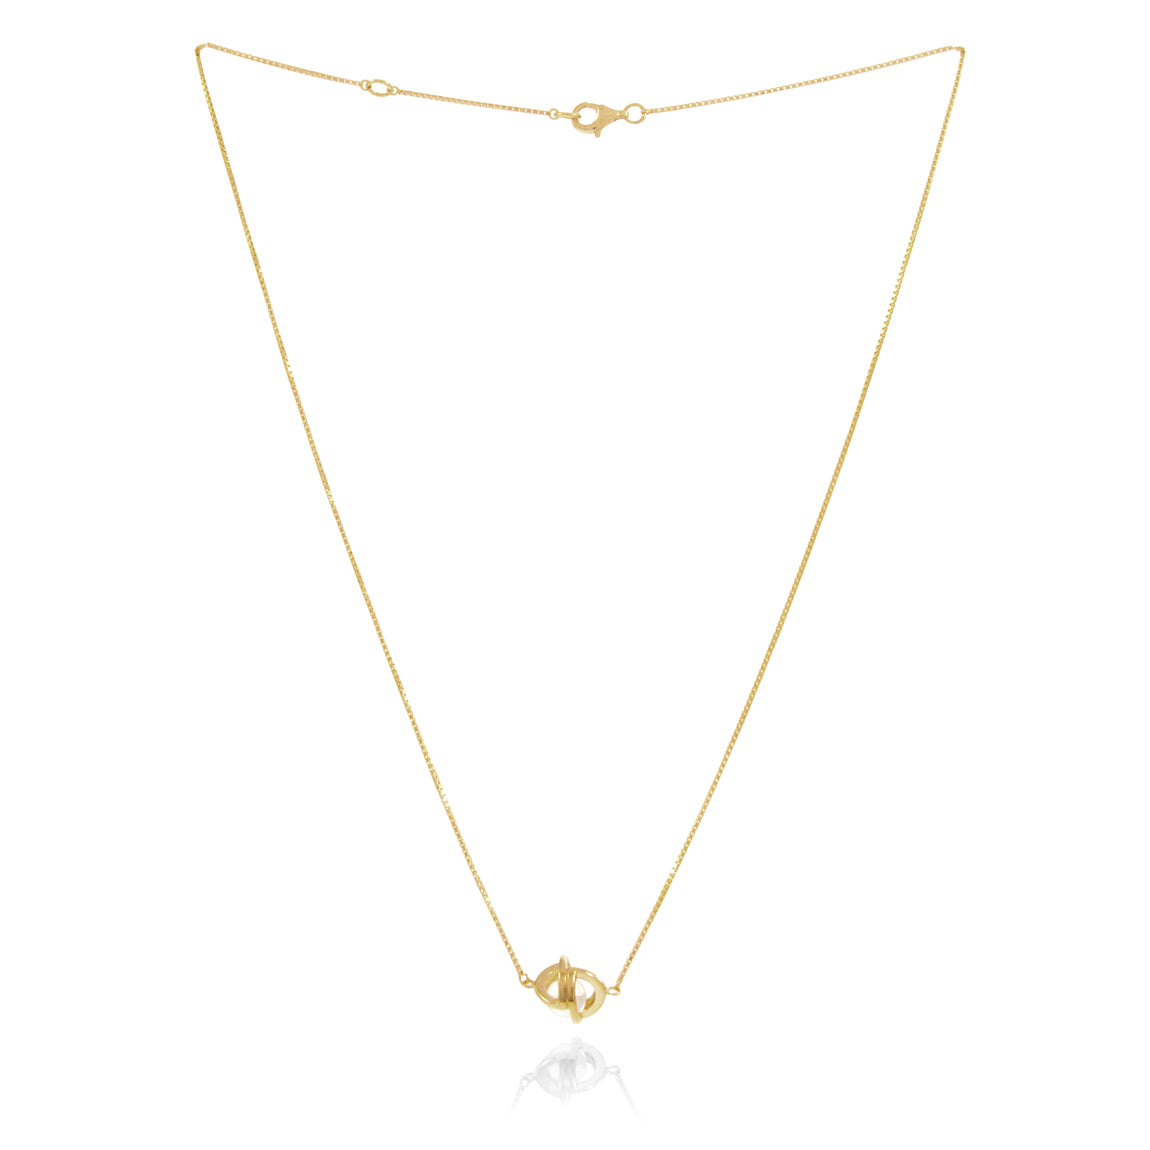 Planetaria Chain Necklace</br>18ct Yellow Gold on Sterling Silver